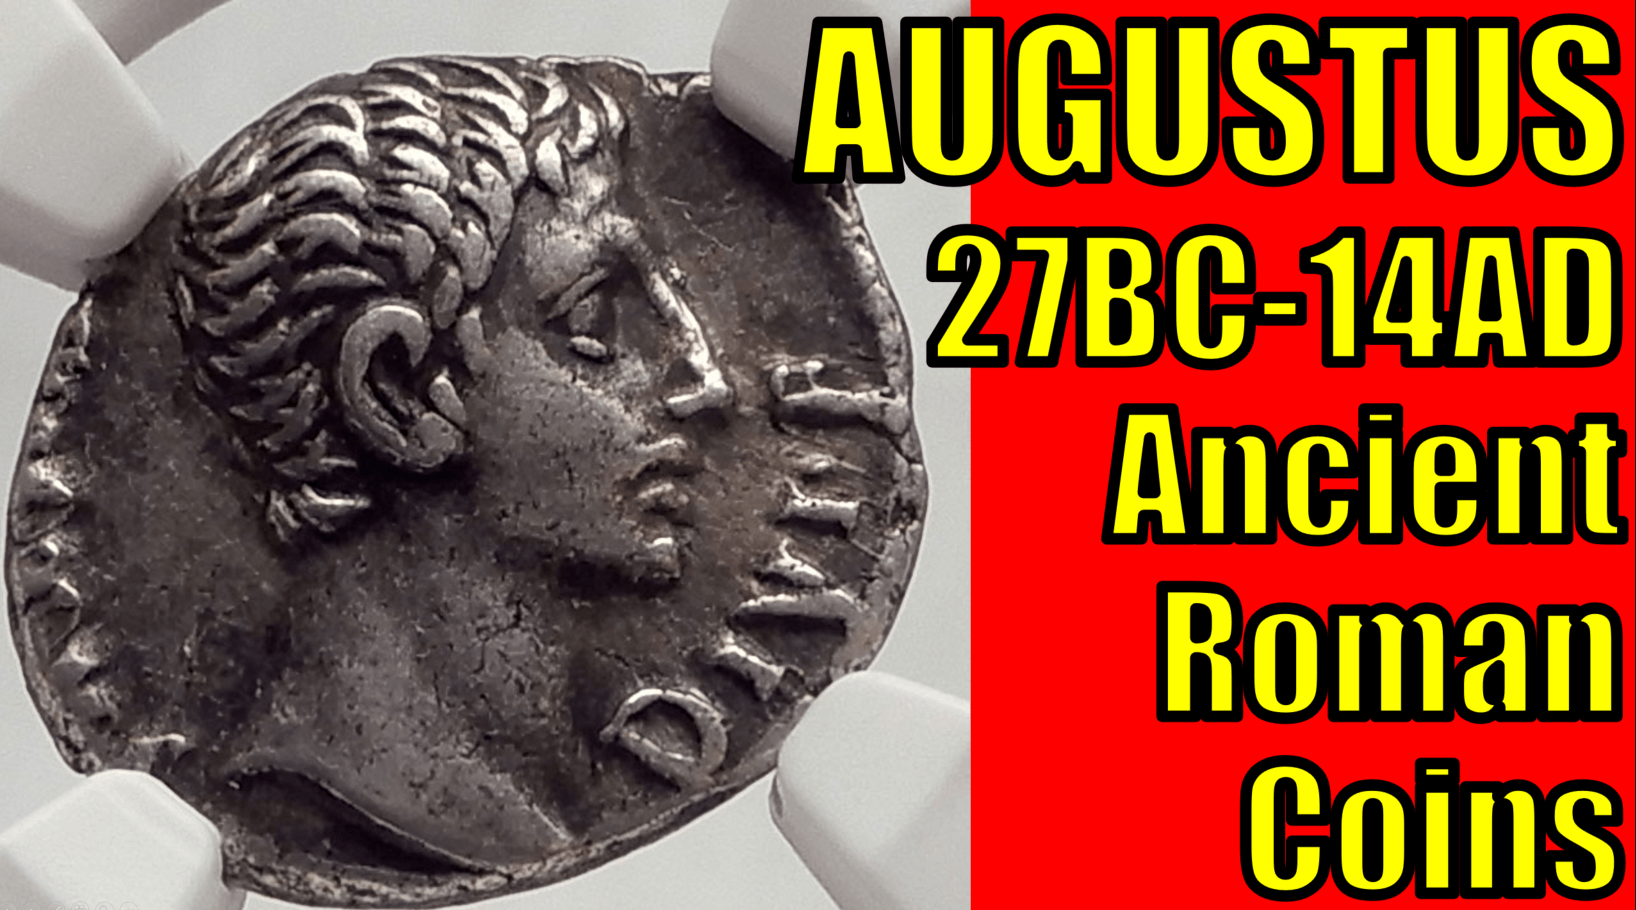 AUGUSTUS Ancient Roman Coins for Sale Online Collecting Guide